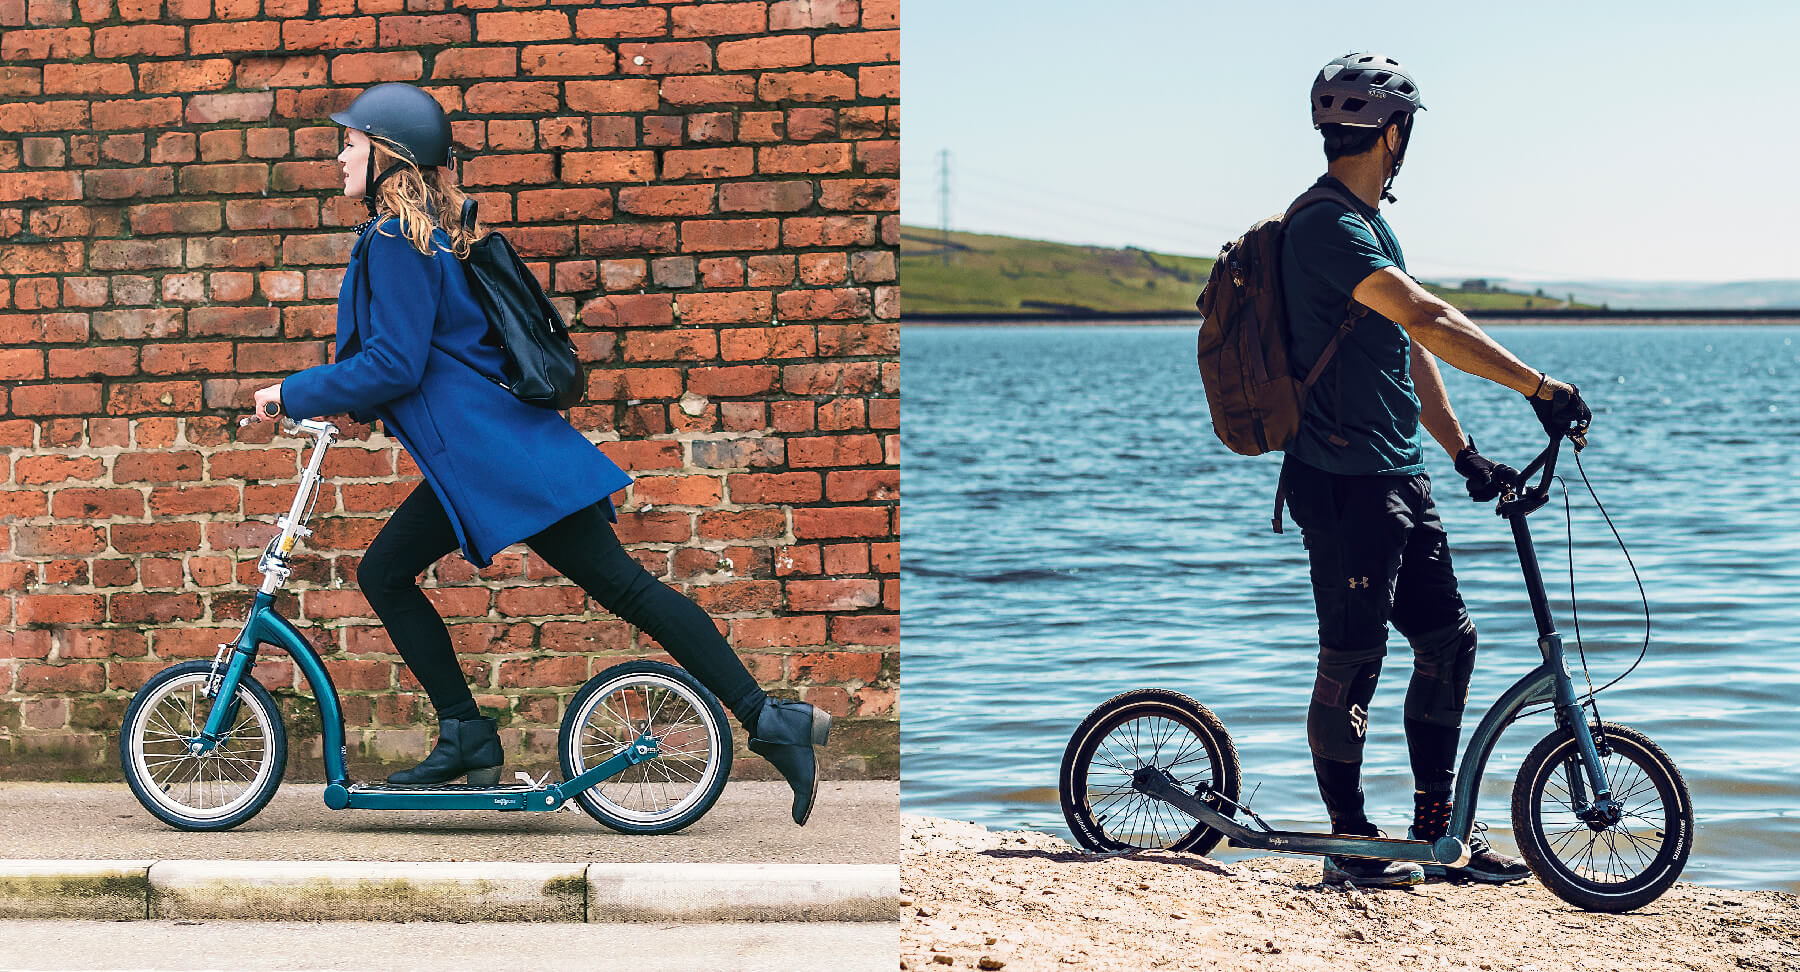 electric scooter for heavy adults, scooters for adults big wheels